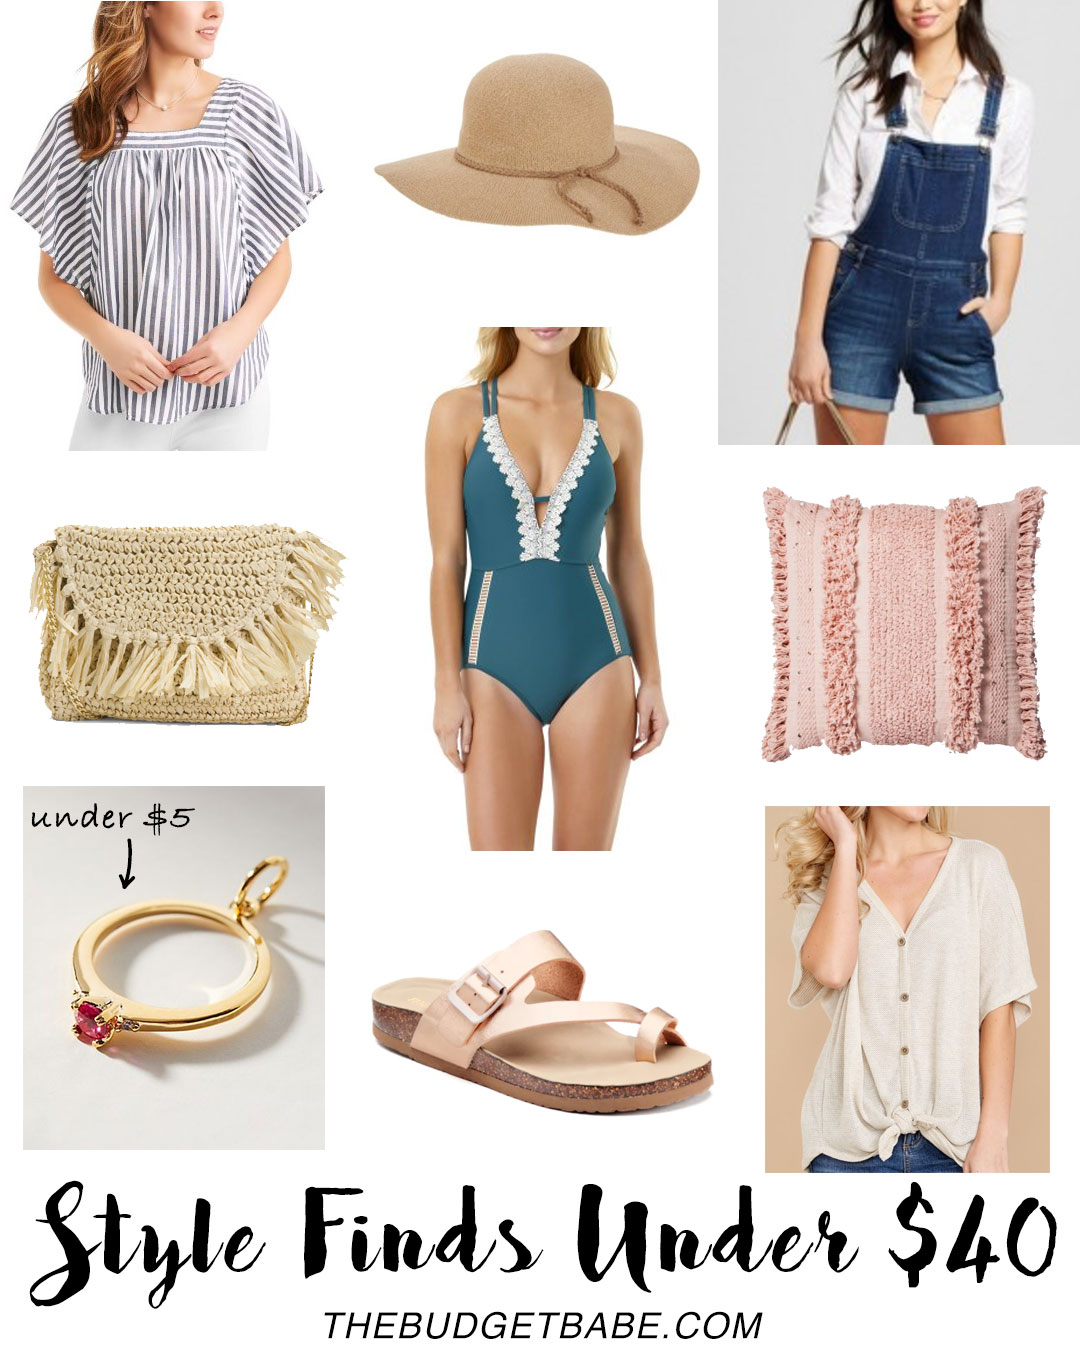 Style Finds Under $40 - now this is a budget fashion blog for real!